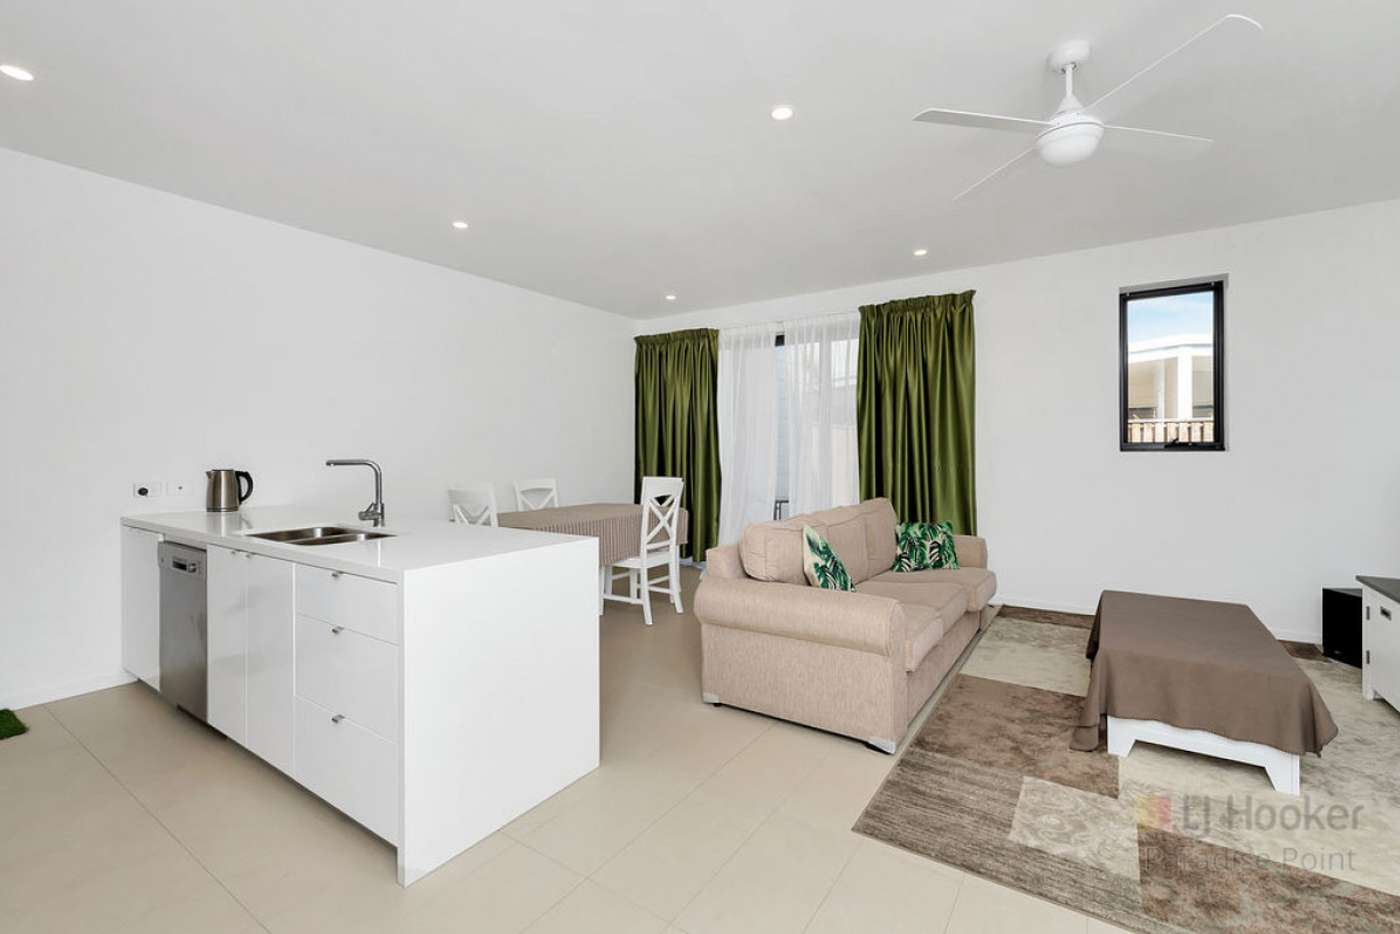 Sixth view of Homely townhouse listing, 4 Sorrento Street, Hope Island QLD 4212